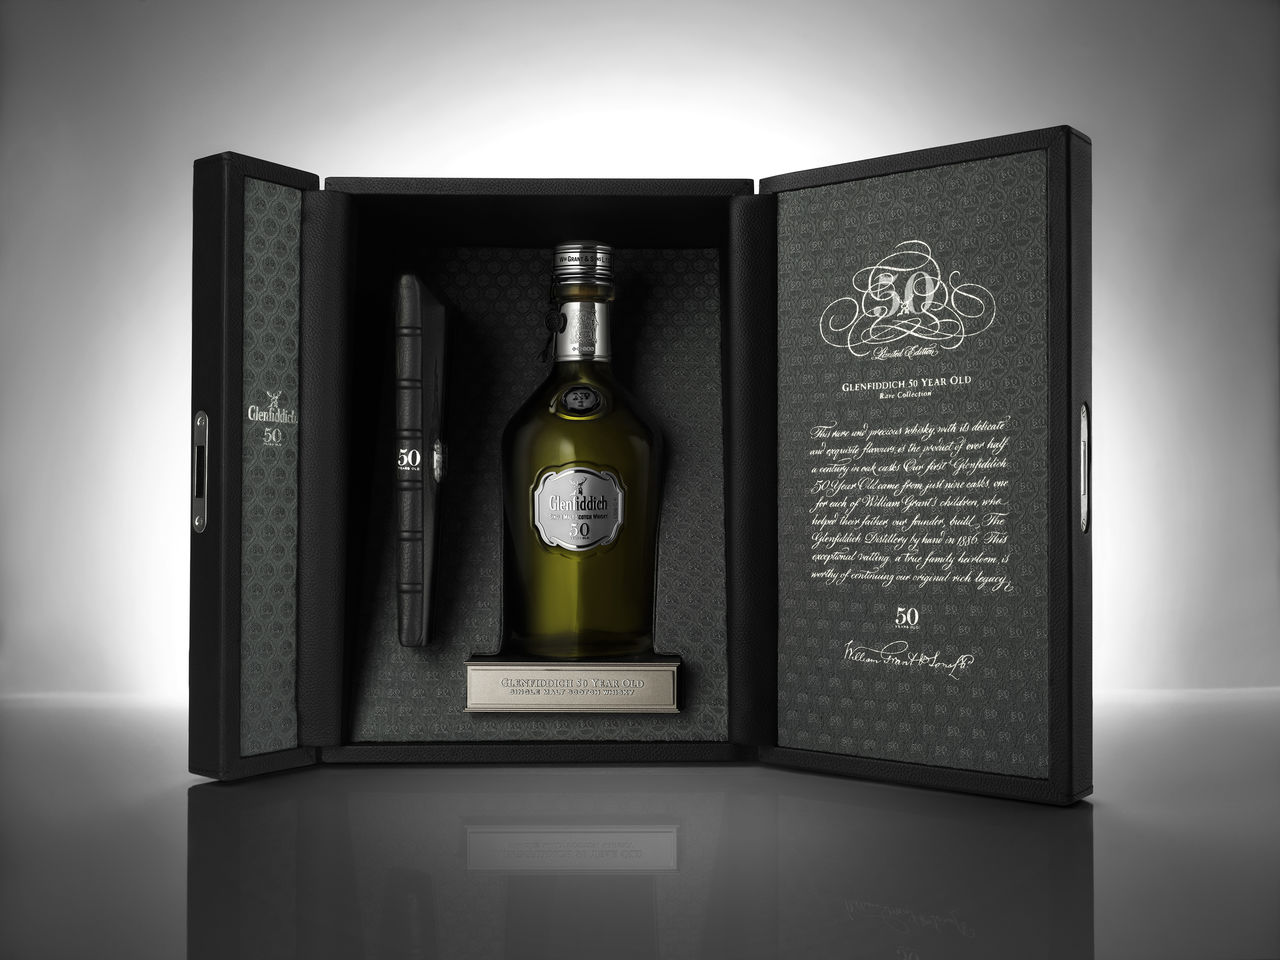 Mumbai Duty Free Becomes First Indian Retailer To List Rare Glenfiddich 50yo photo